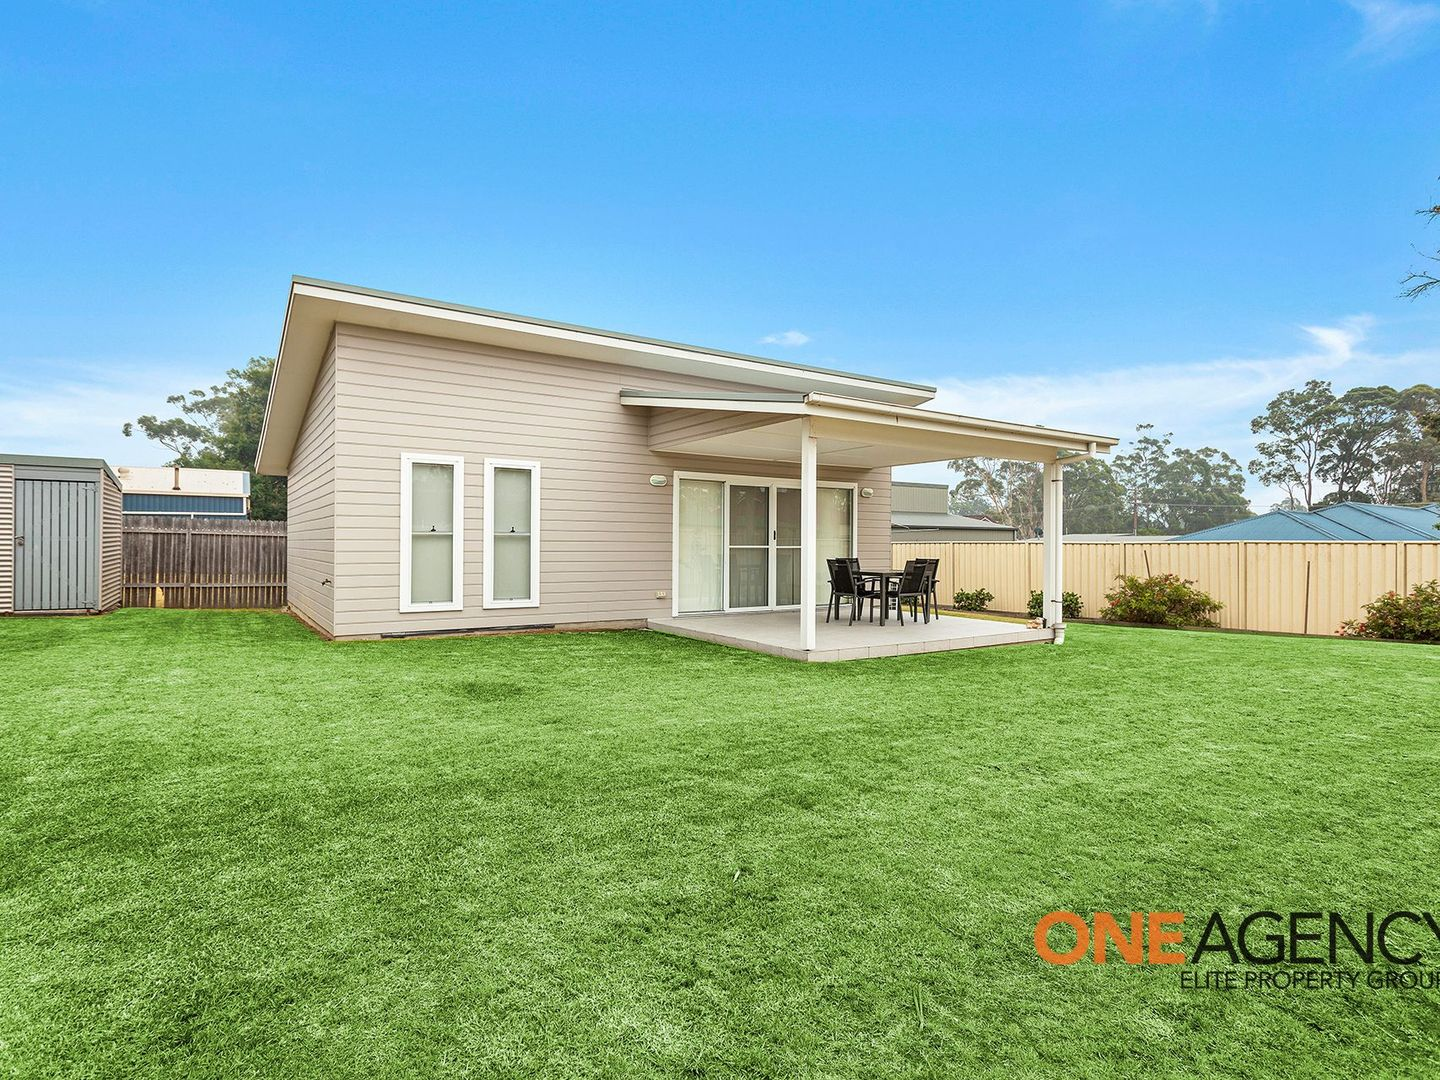 53 Tallyan Point Road, Basin View NSW 2540, Image 1